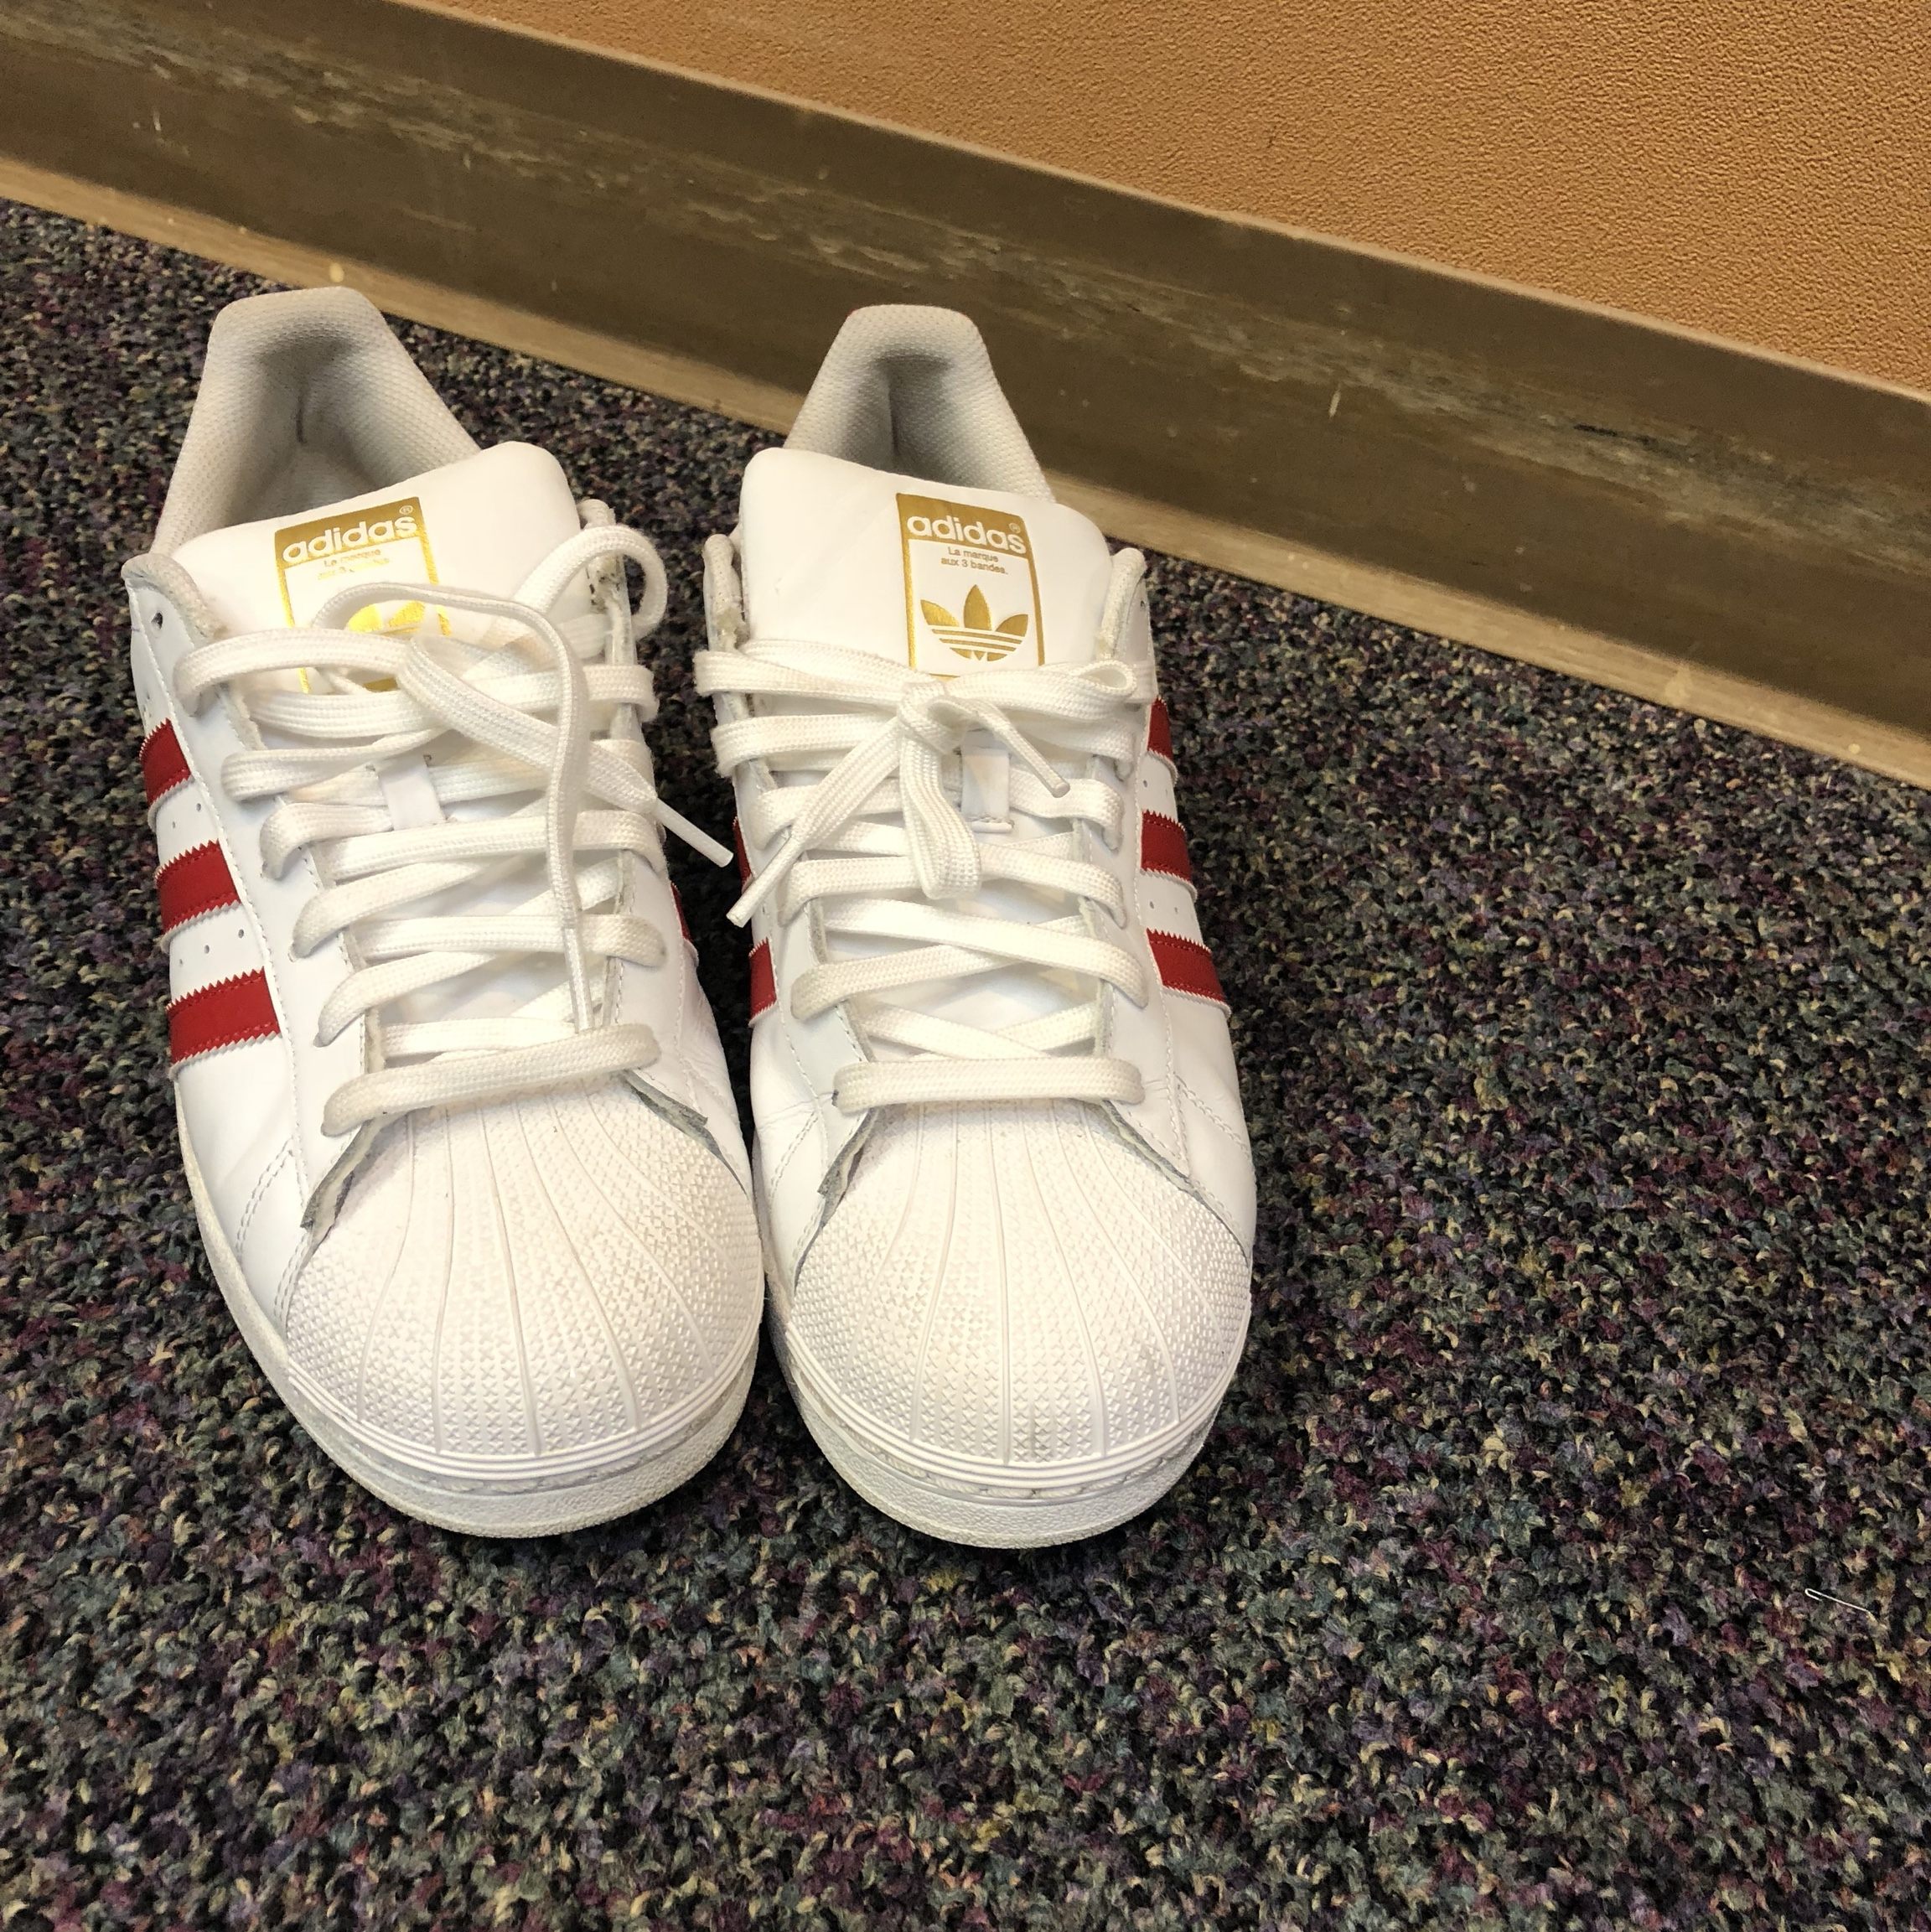 Red and White Adidas Superstar shell